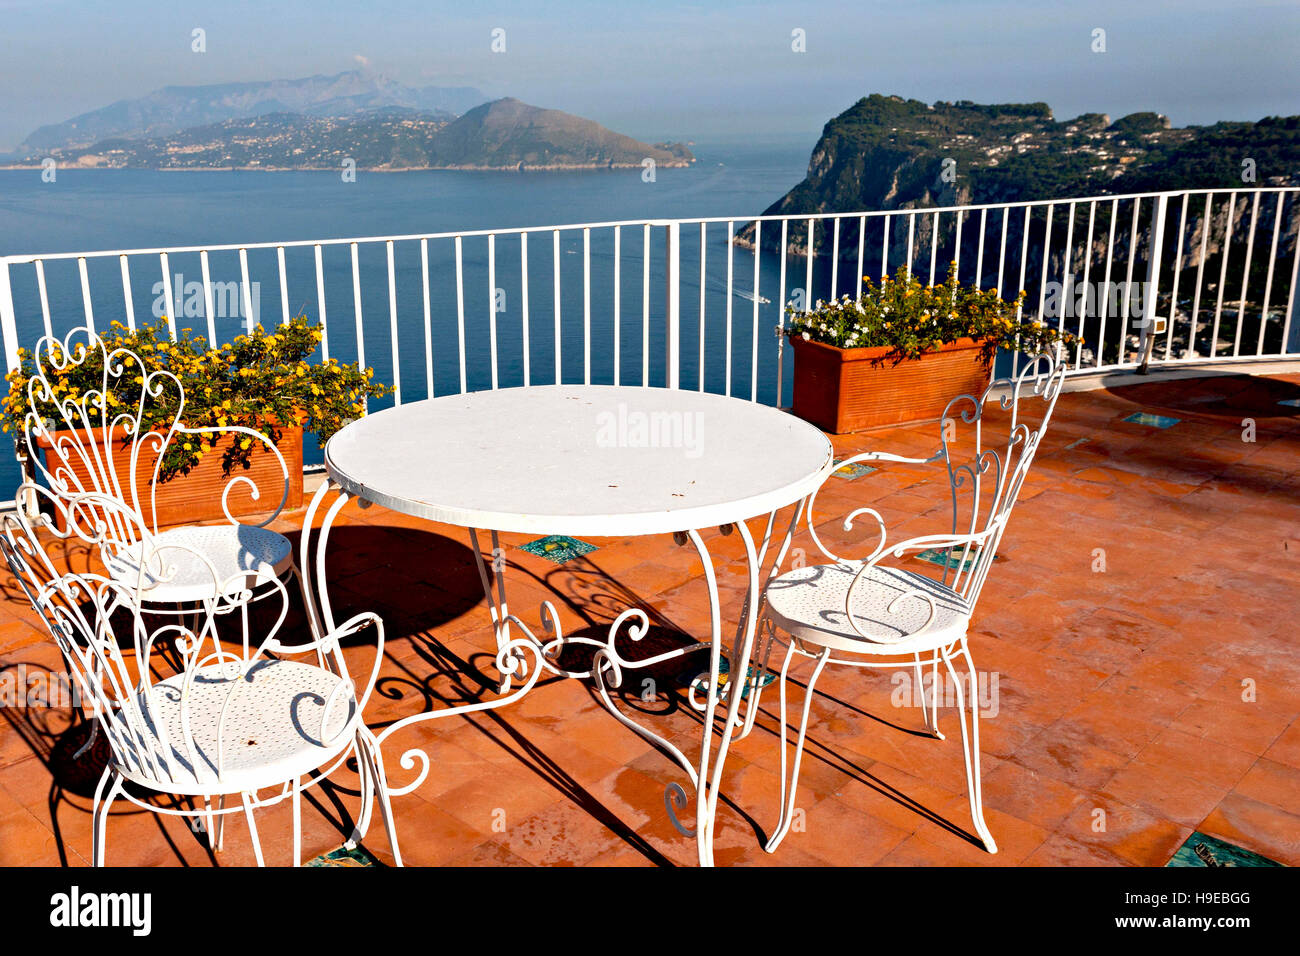 Balcony Outdoor Table And Chairs Setting With View Over The Bay Of Naples  And Ischia, Capri, Campania, Italy, Europe